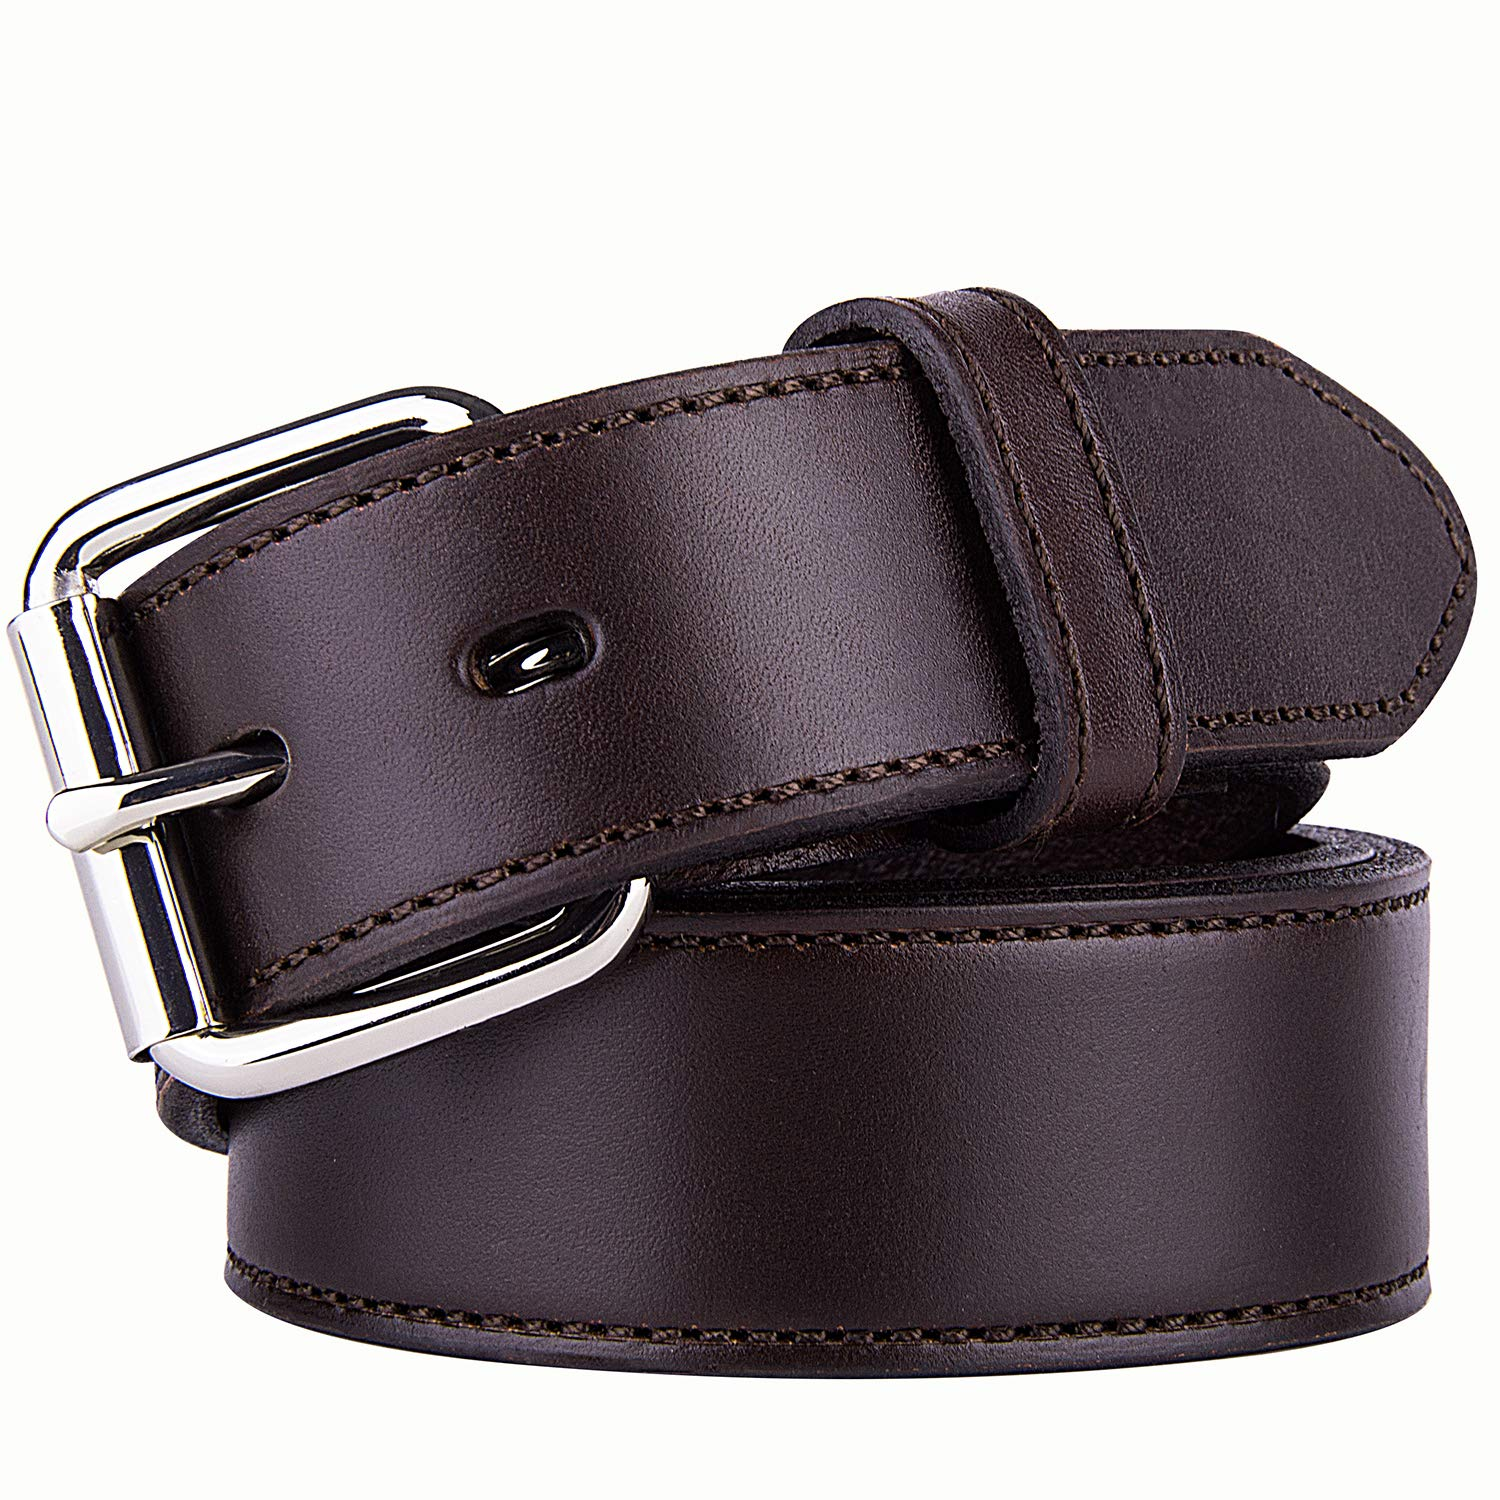 POYOLEE Concealed Carry CCW Leather Gun Belt | Top Grain Leather Belt for Gun Carry | Mens Heavy Duty EDC Belt 1 1/2-Inch